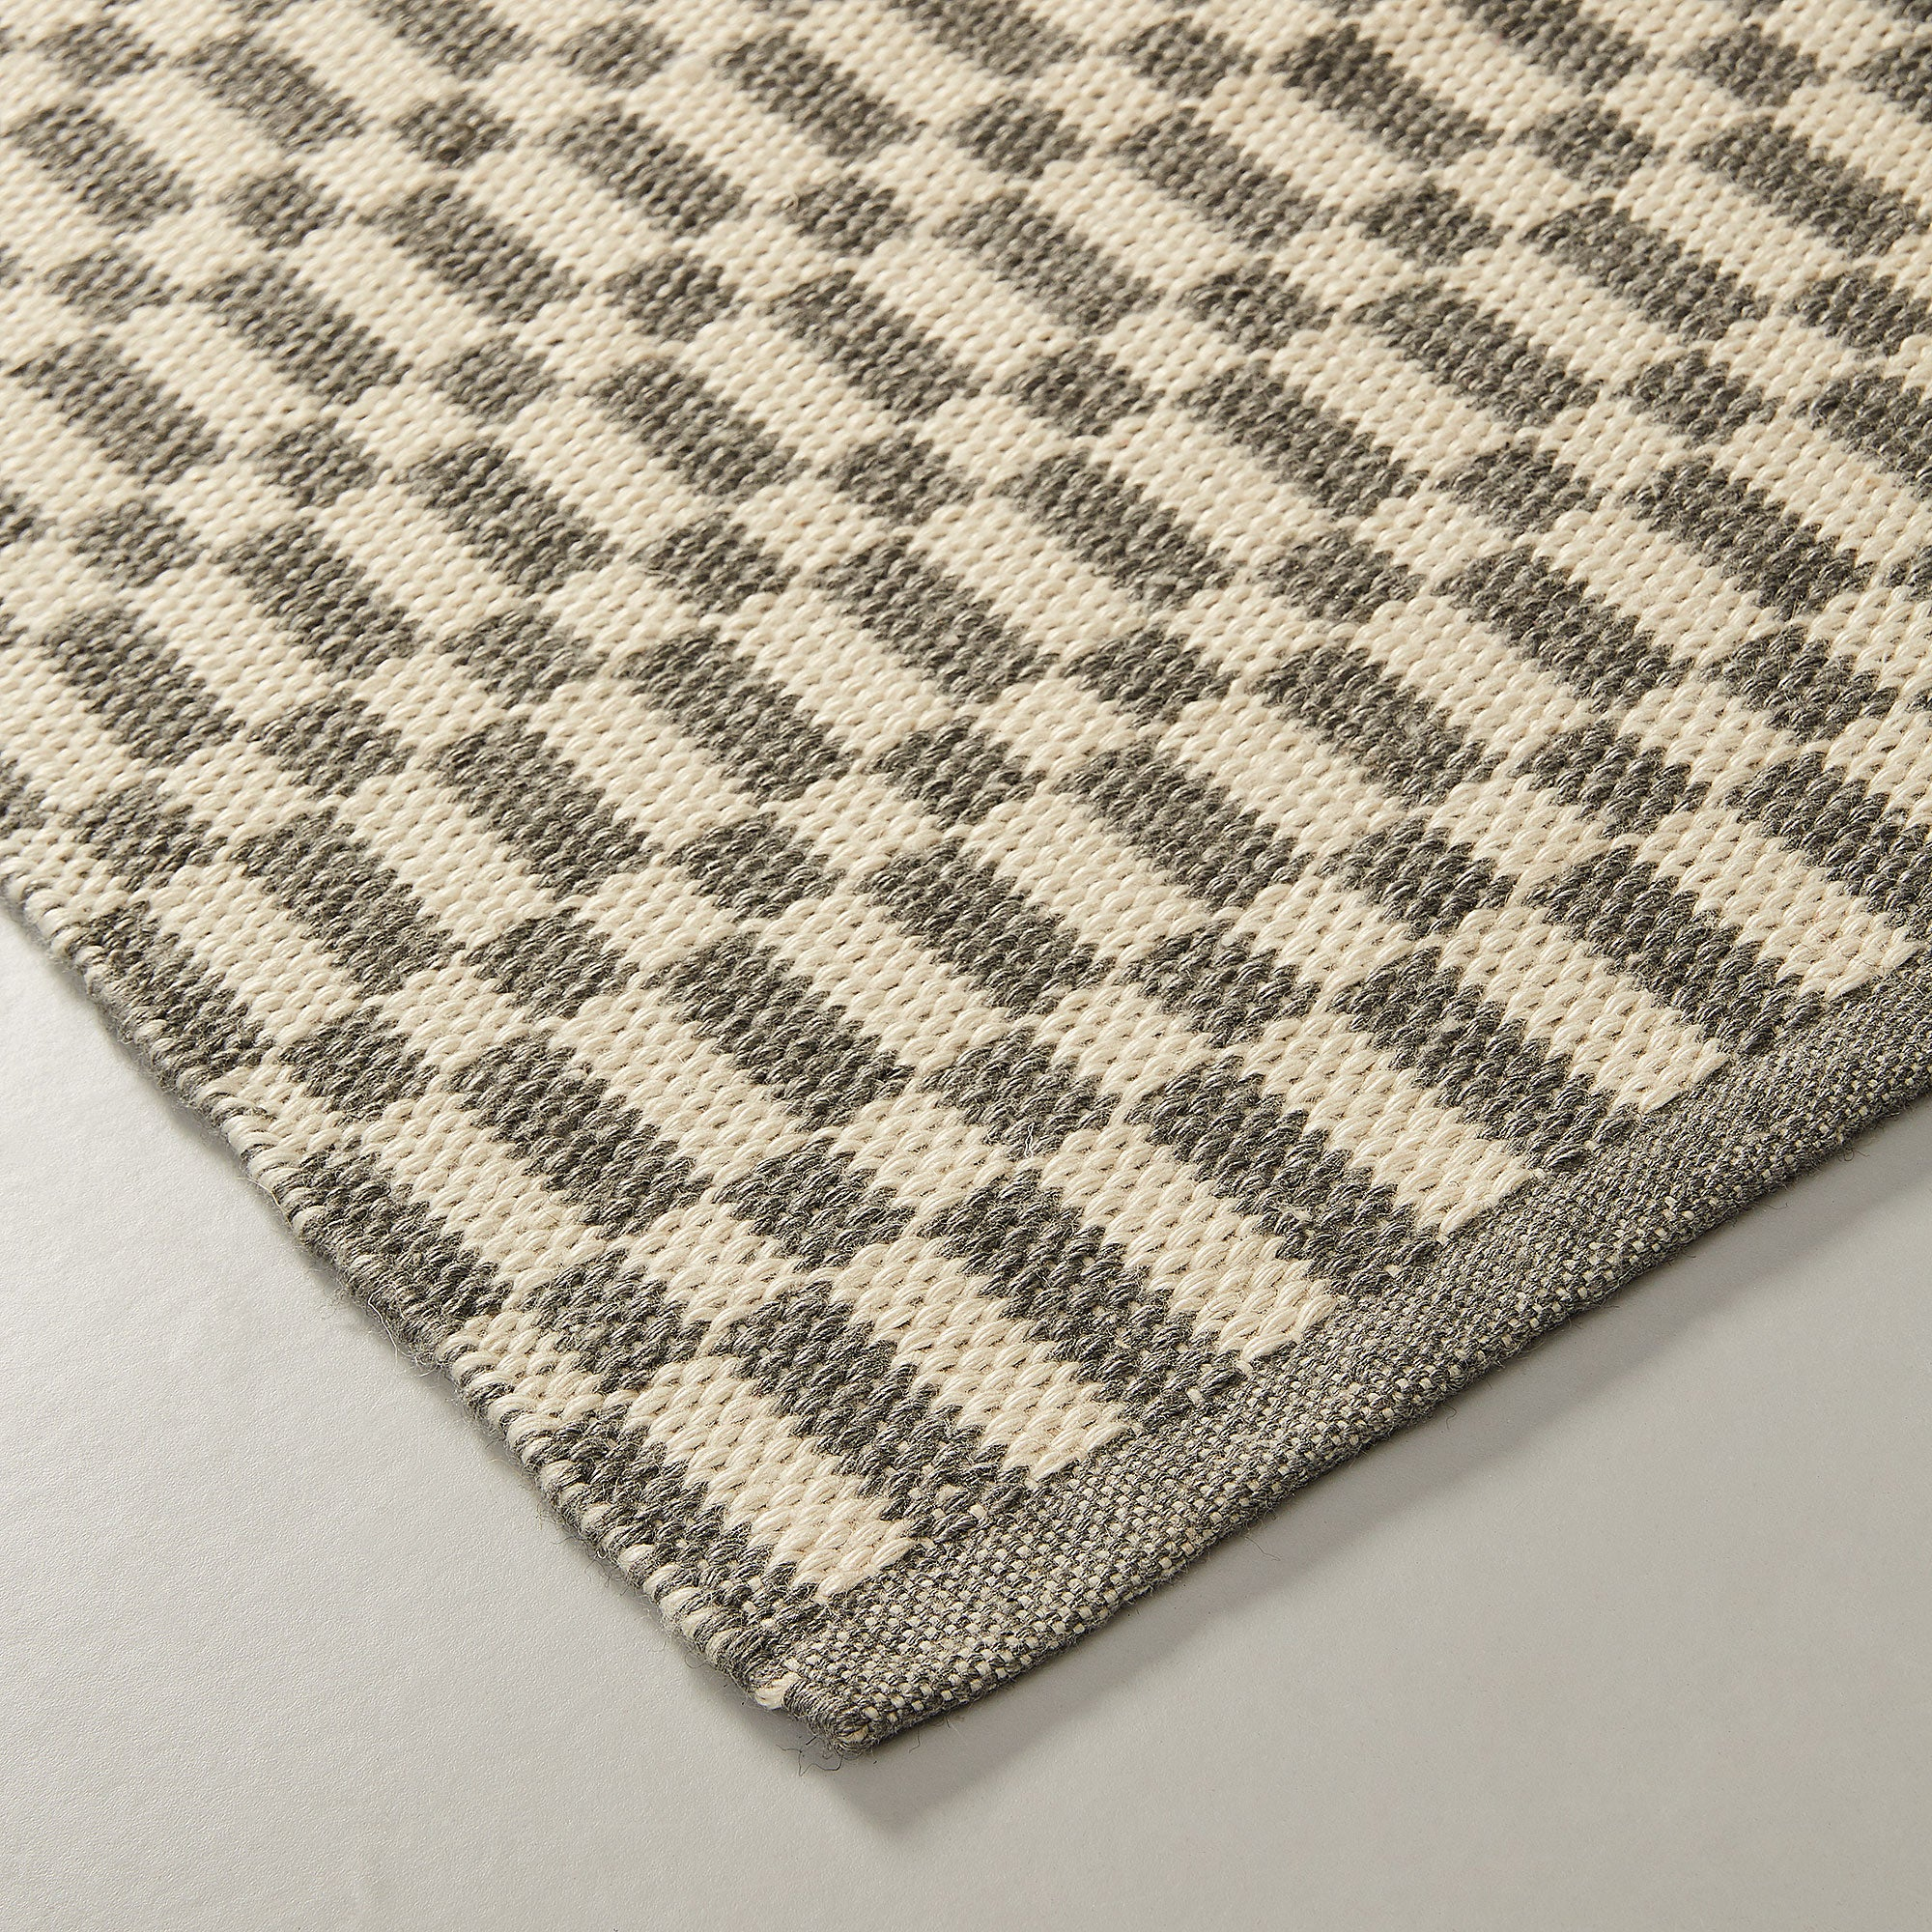 Swarna Rug - Two-tone Grey and Beige Pattern 130 x 190 cm - Home-Buy Interiors